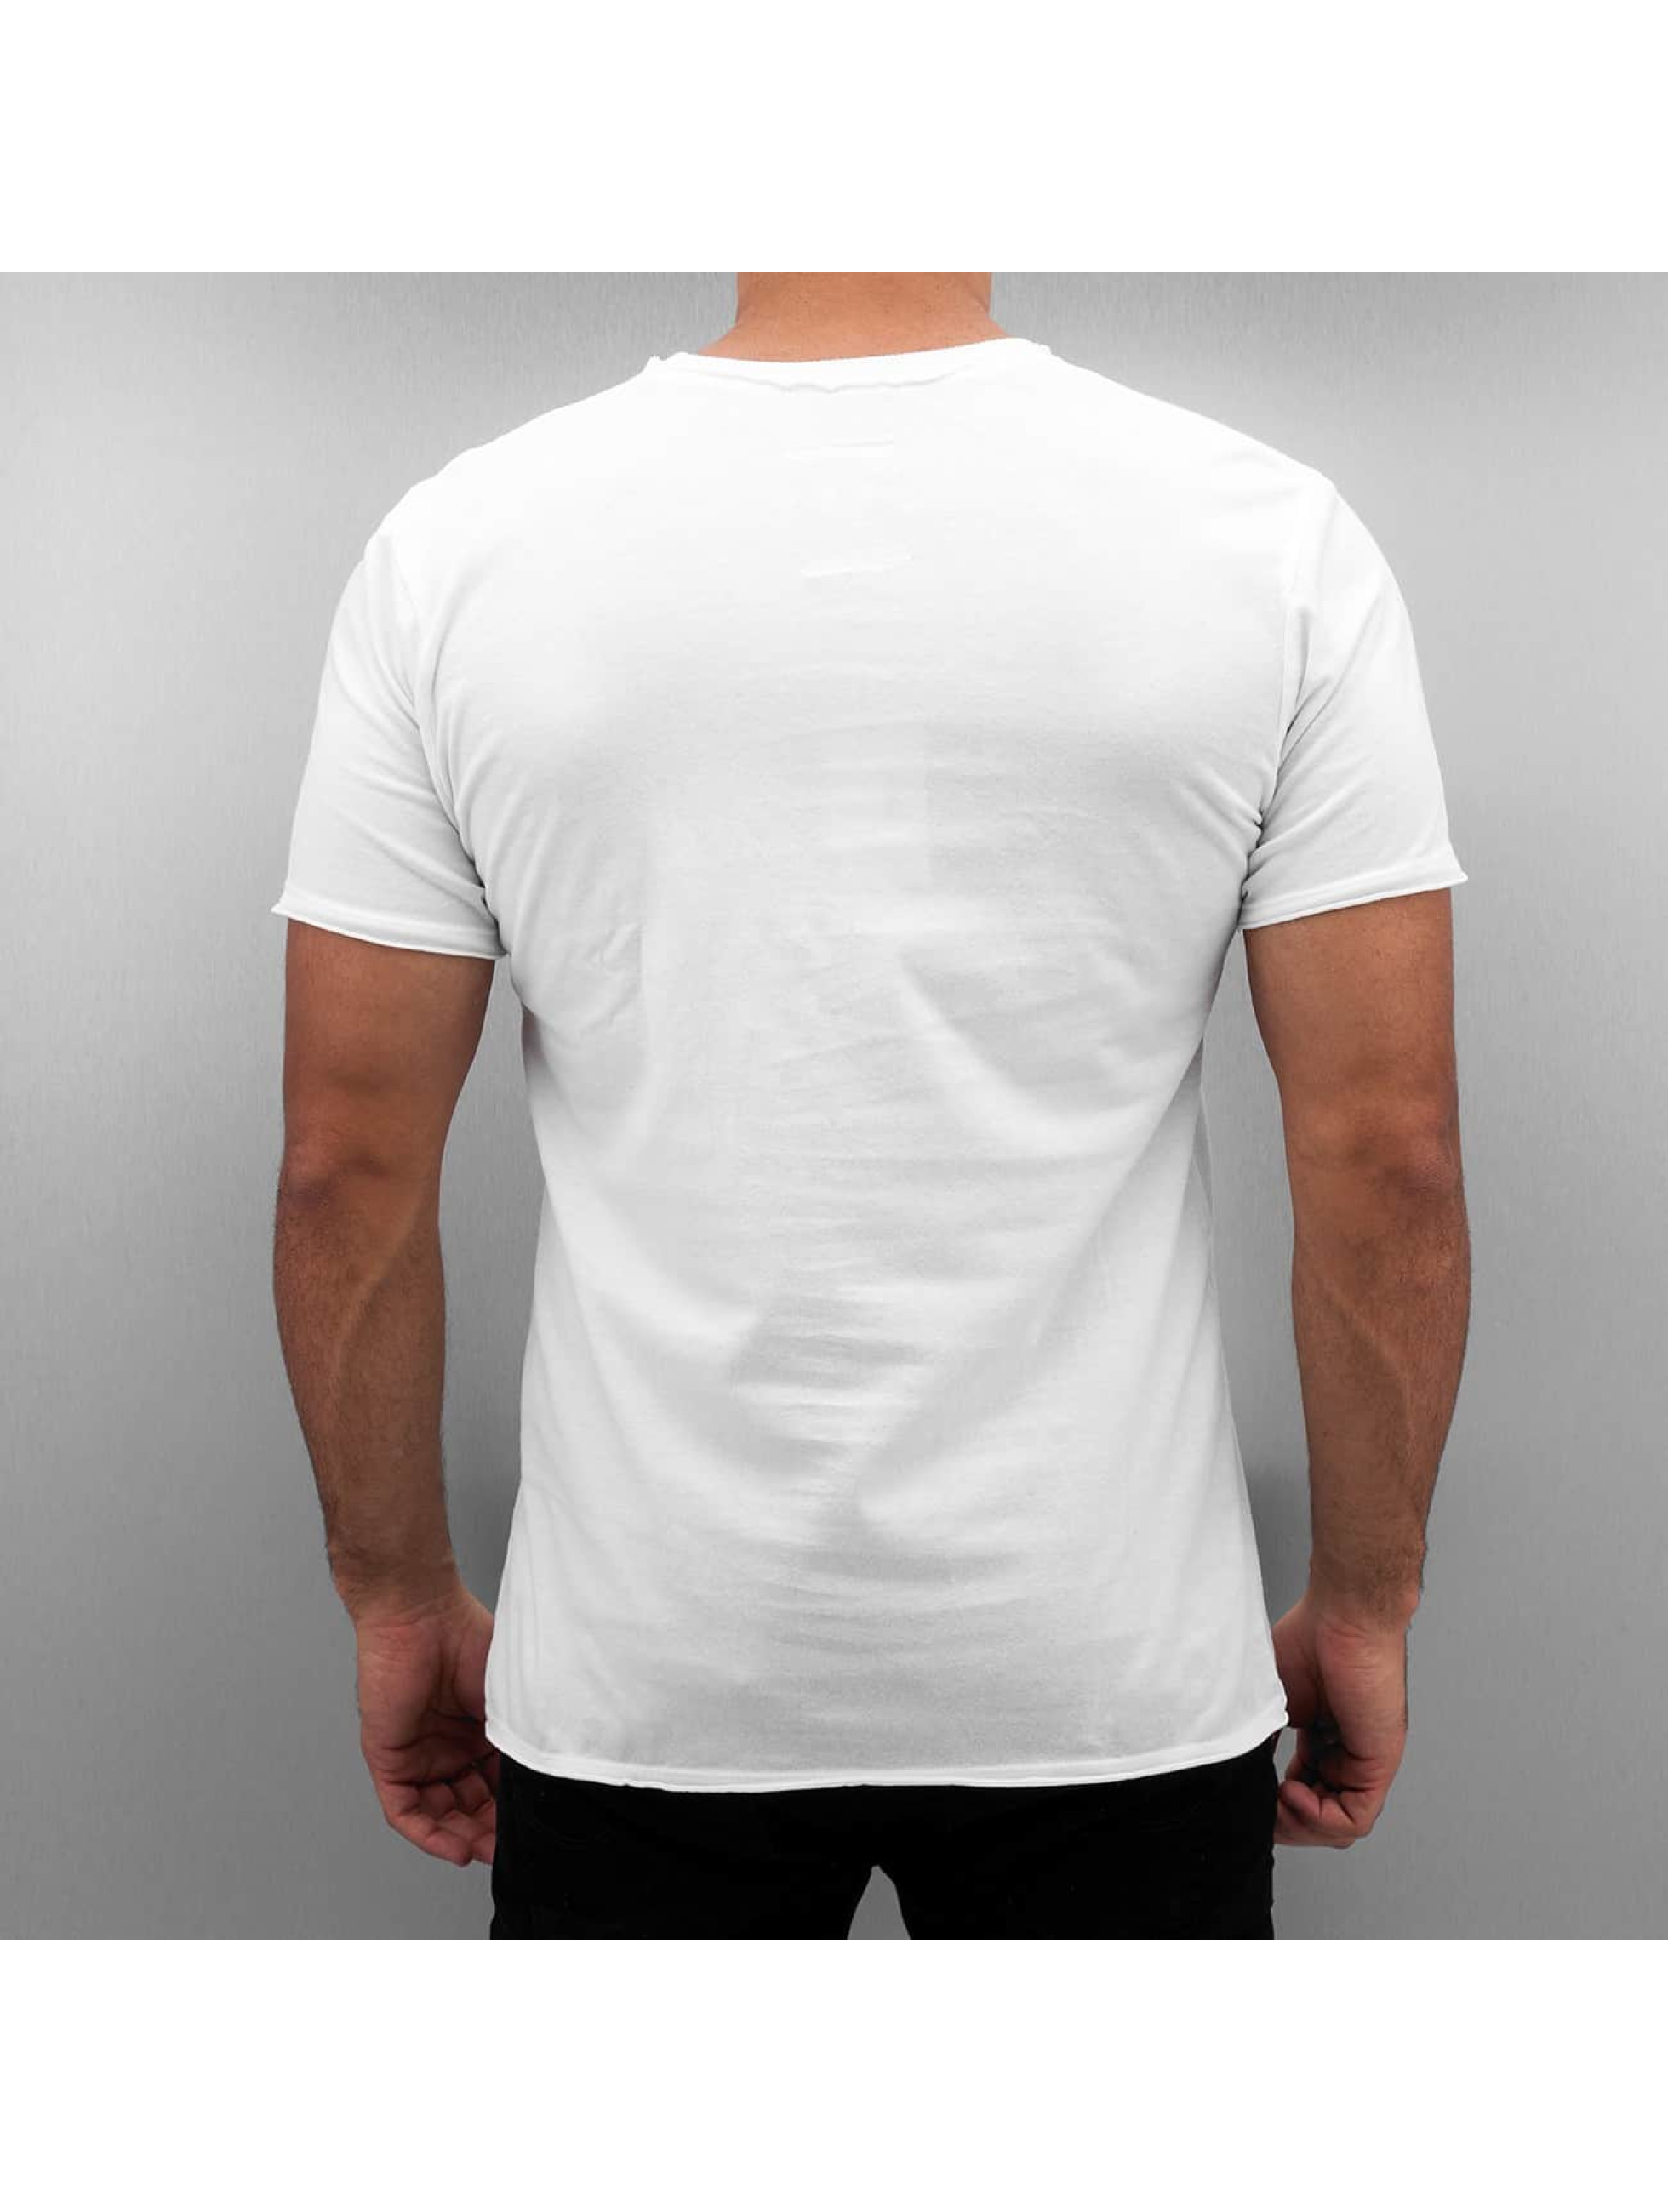 Amplified T-shirt Rolling Stones Autograph bianco